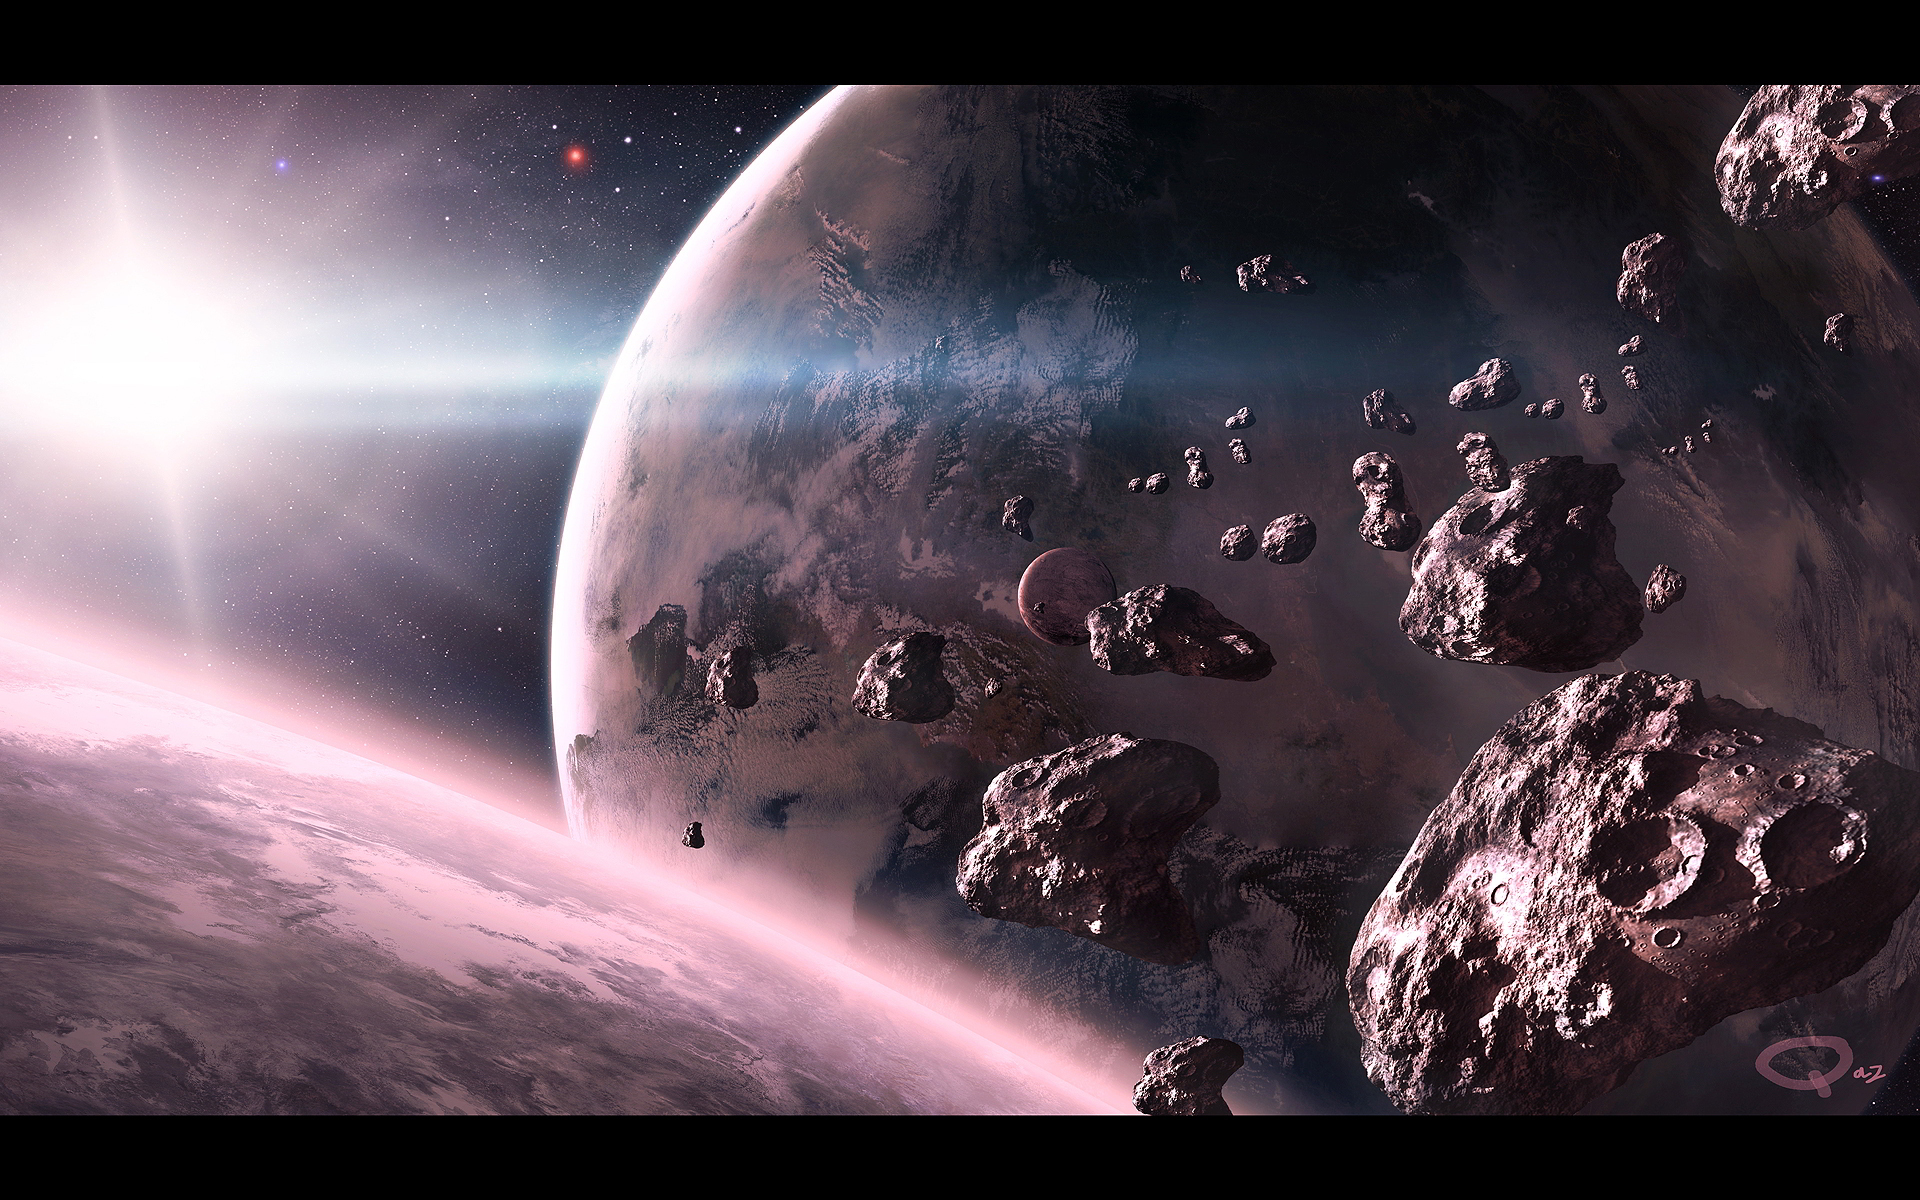 asteroid in space blowing up - photo #17